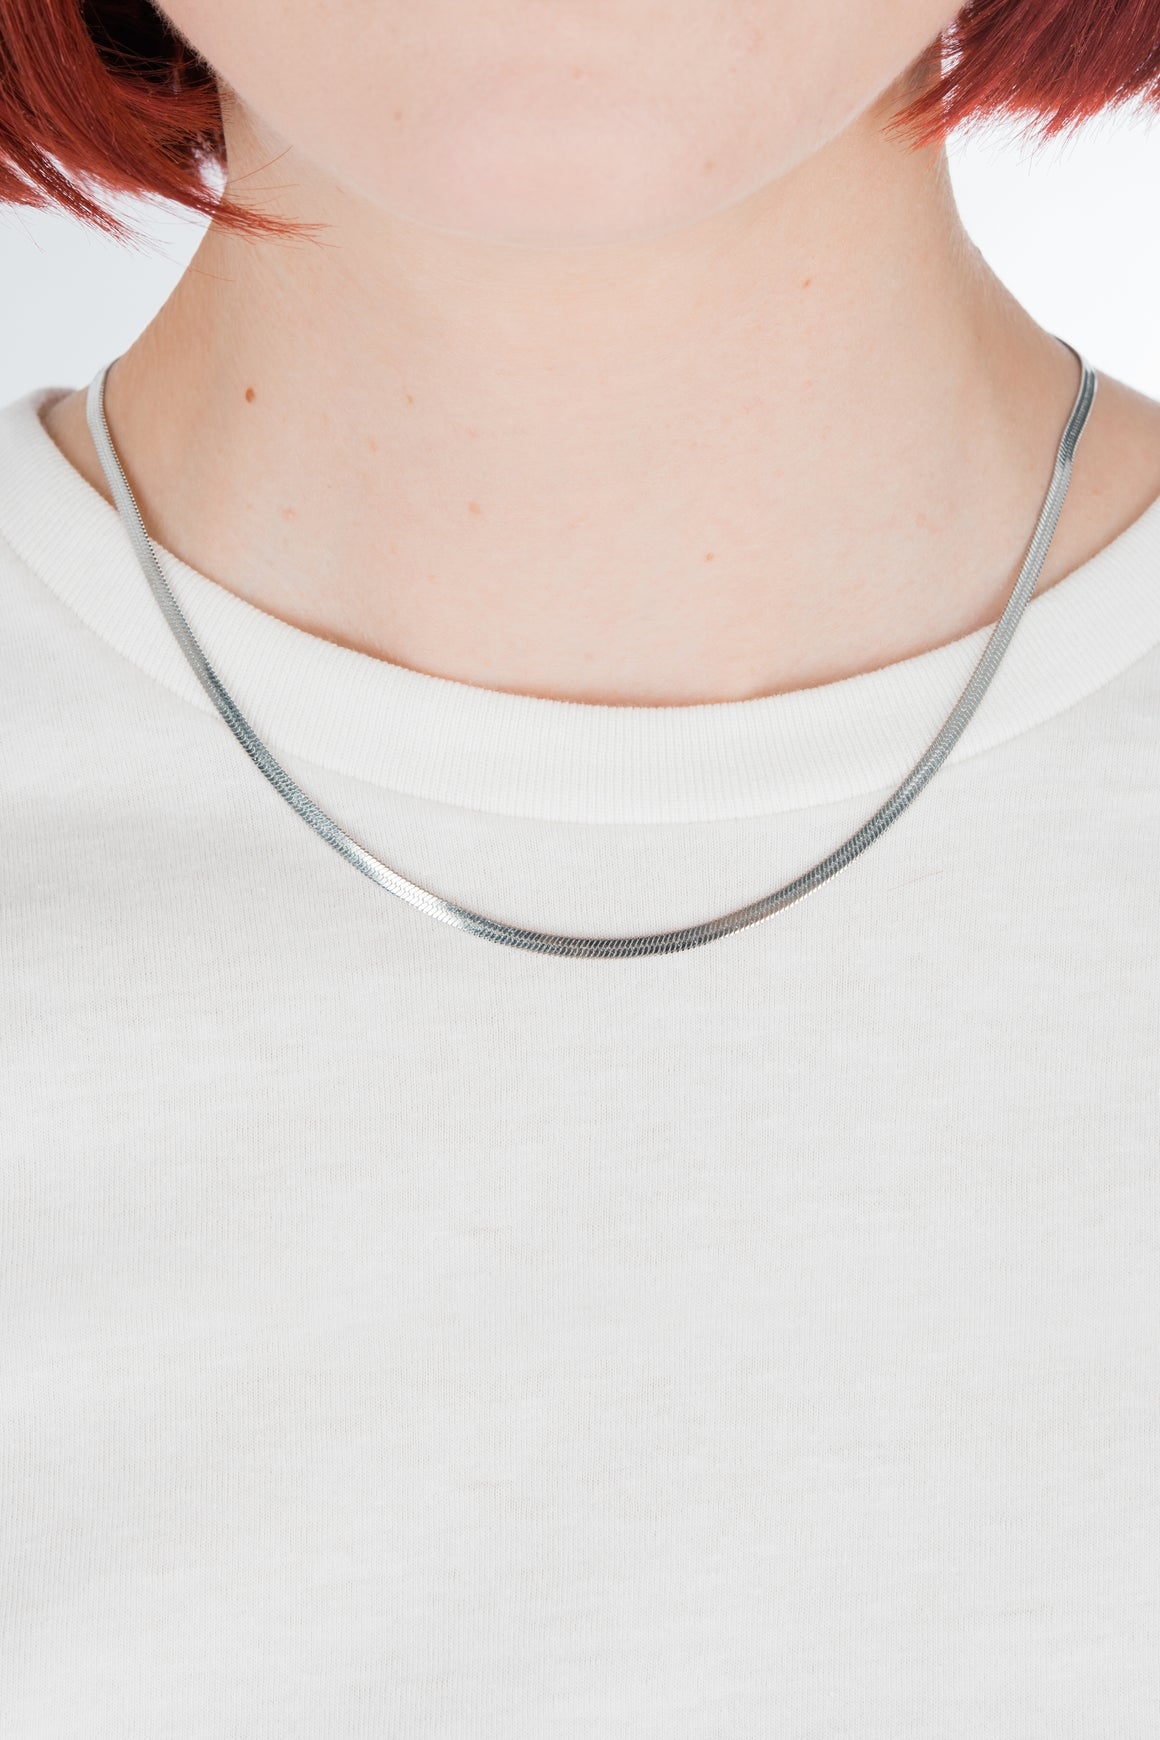 Snake Chain in Silver - Philistine